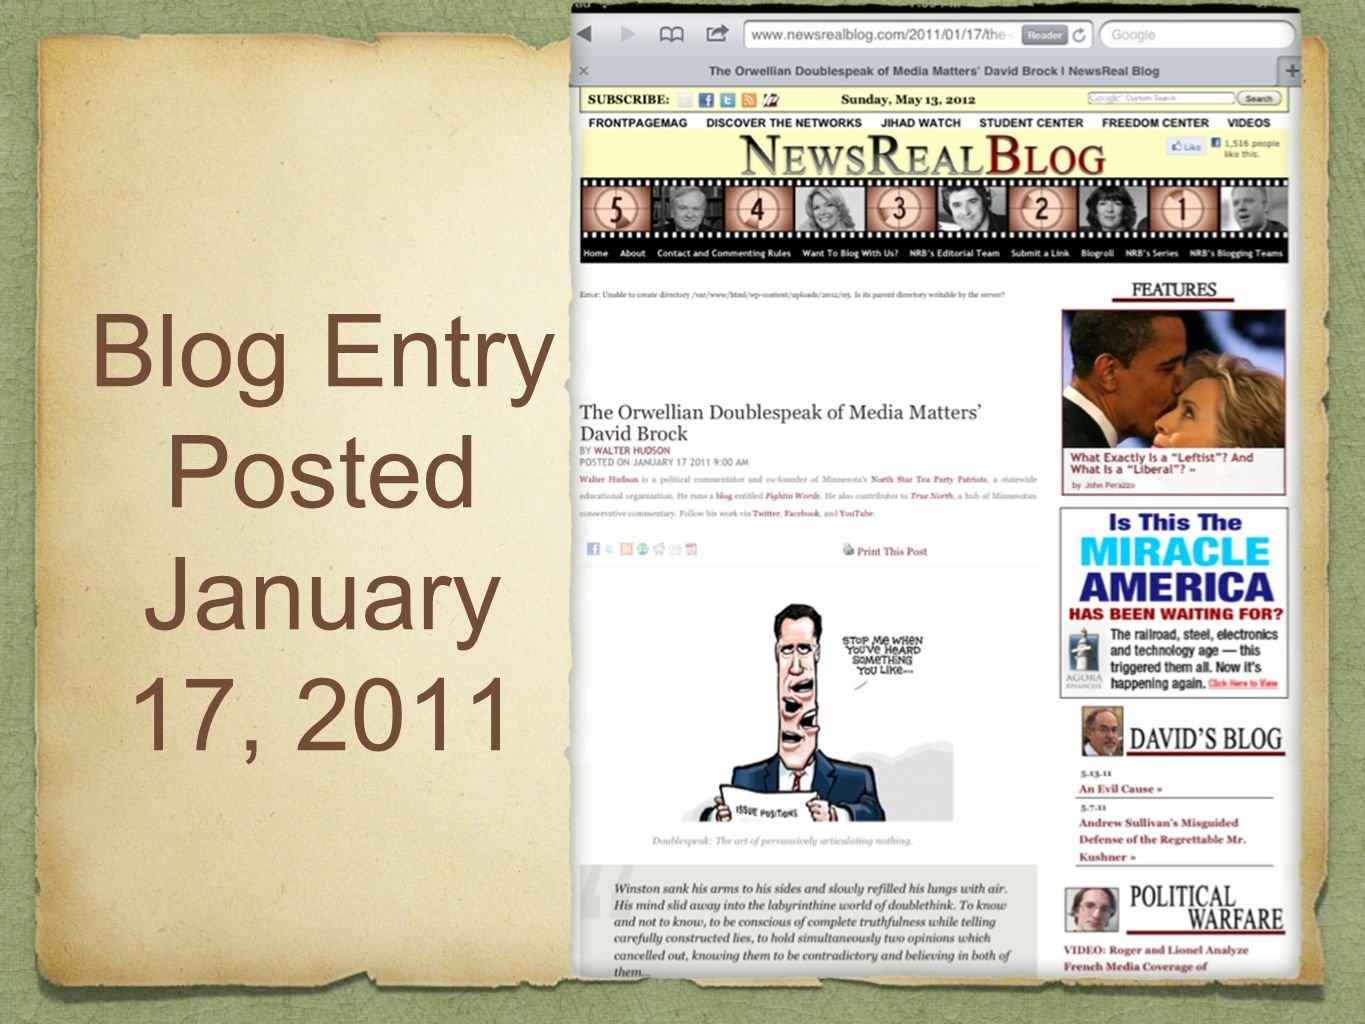 Blog Entry Posted January 17, 2011